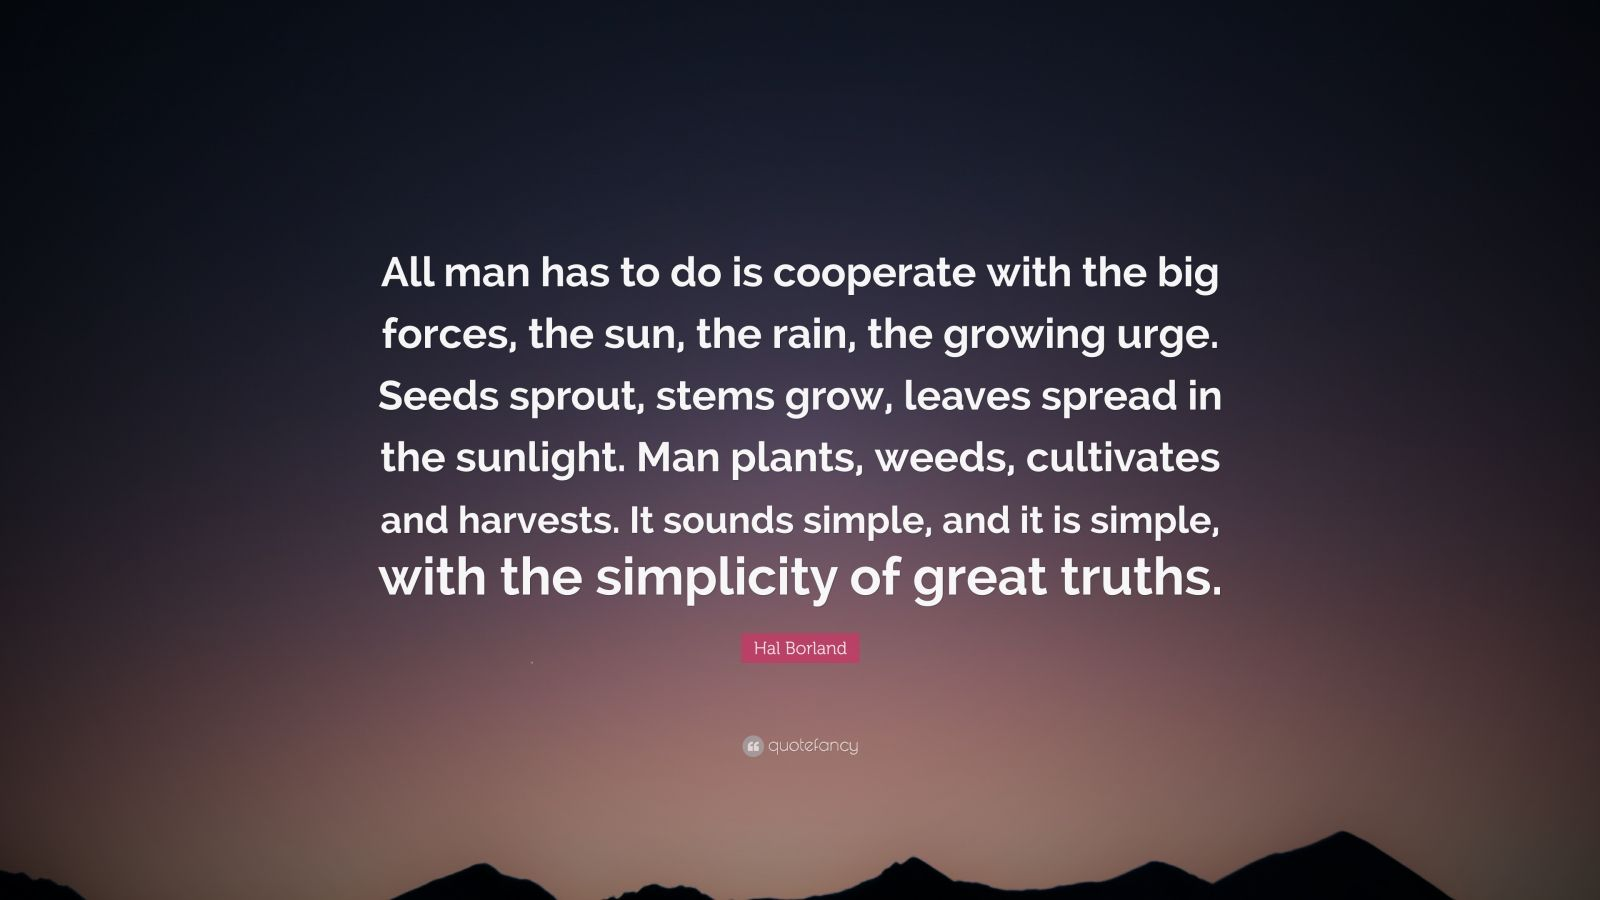 """Hal Borland Quote: """"All man has to do is cooperate with the big forces, the sun, the rain, the growing urge. Seeds sprout, stems grow, leaves spread in the sunlight. Man plants, weeds, cultivates and harvests. It sounds simple, and it is simple, with the simplicity of great truths."""""""